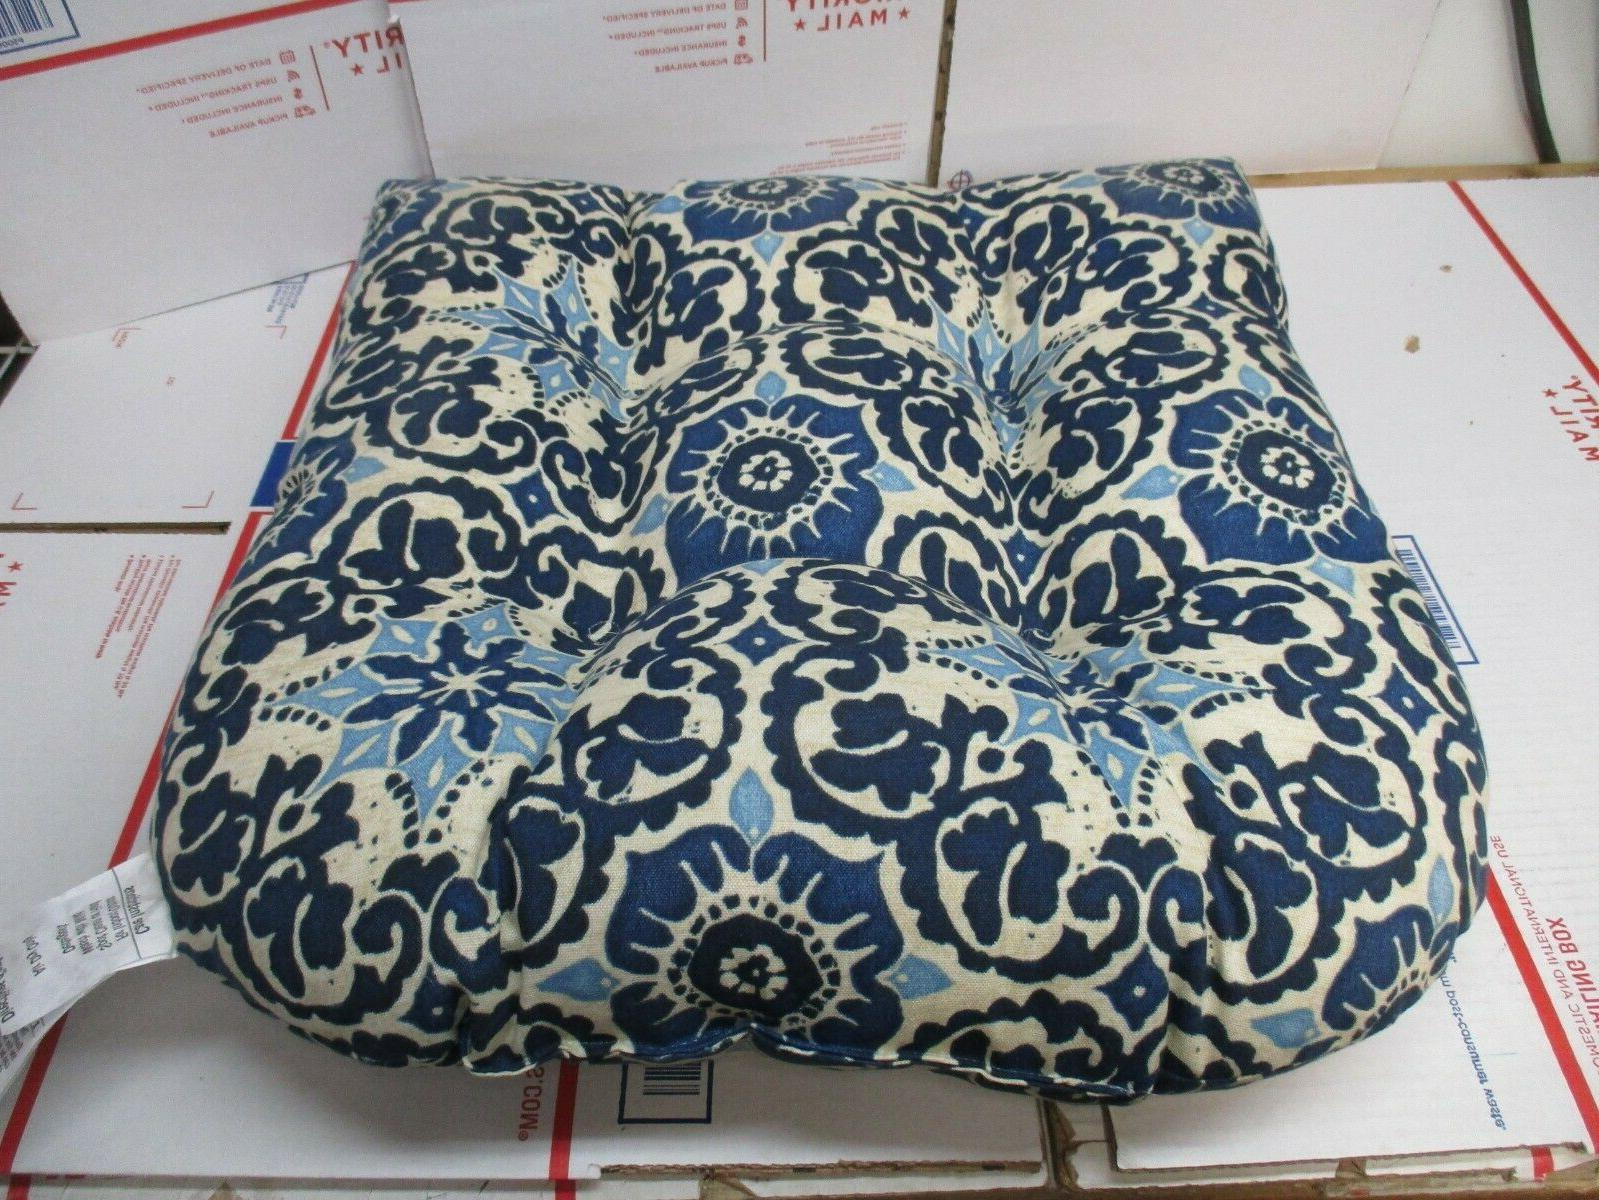 PILLOW CHAIR CUSHIONS PAD FOR WICKER BRAND FAST SHIPPING